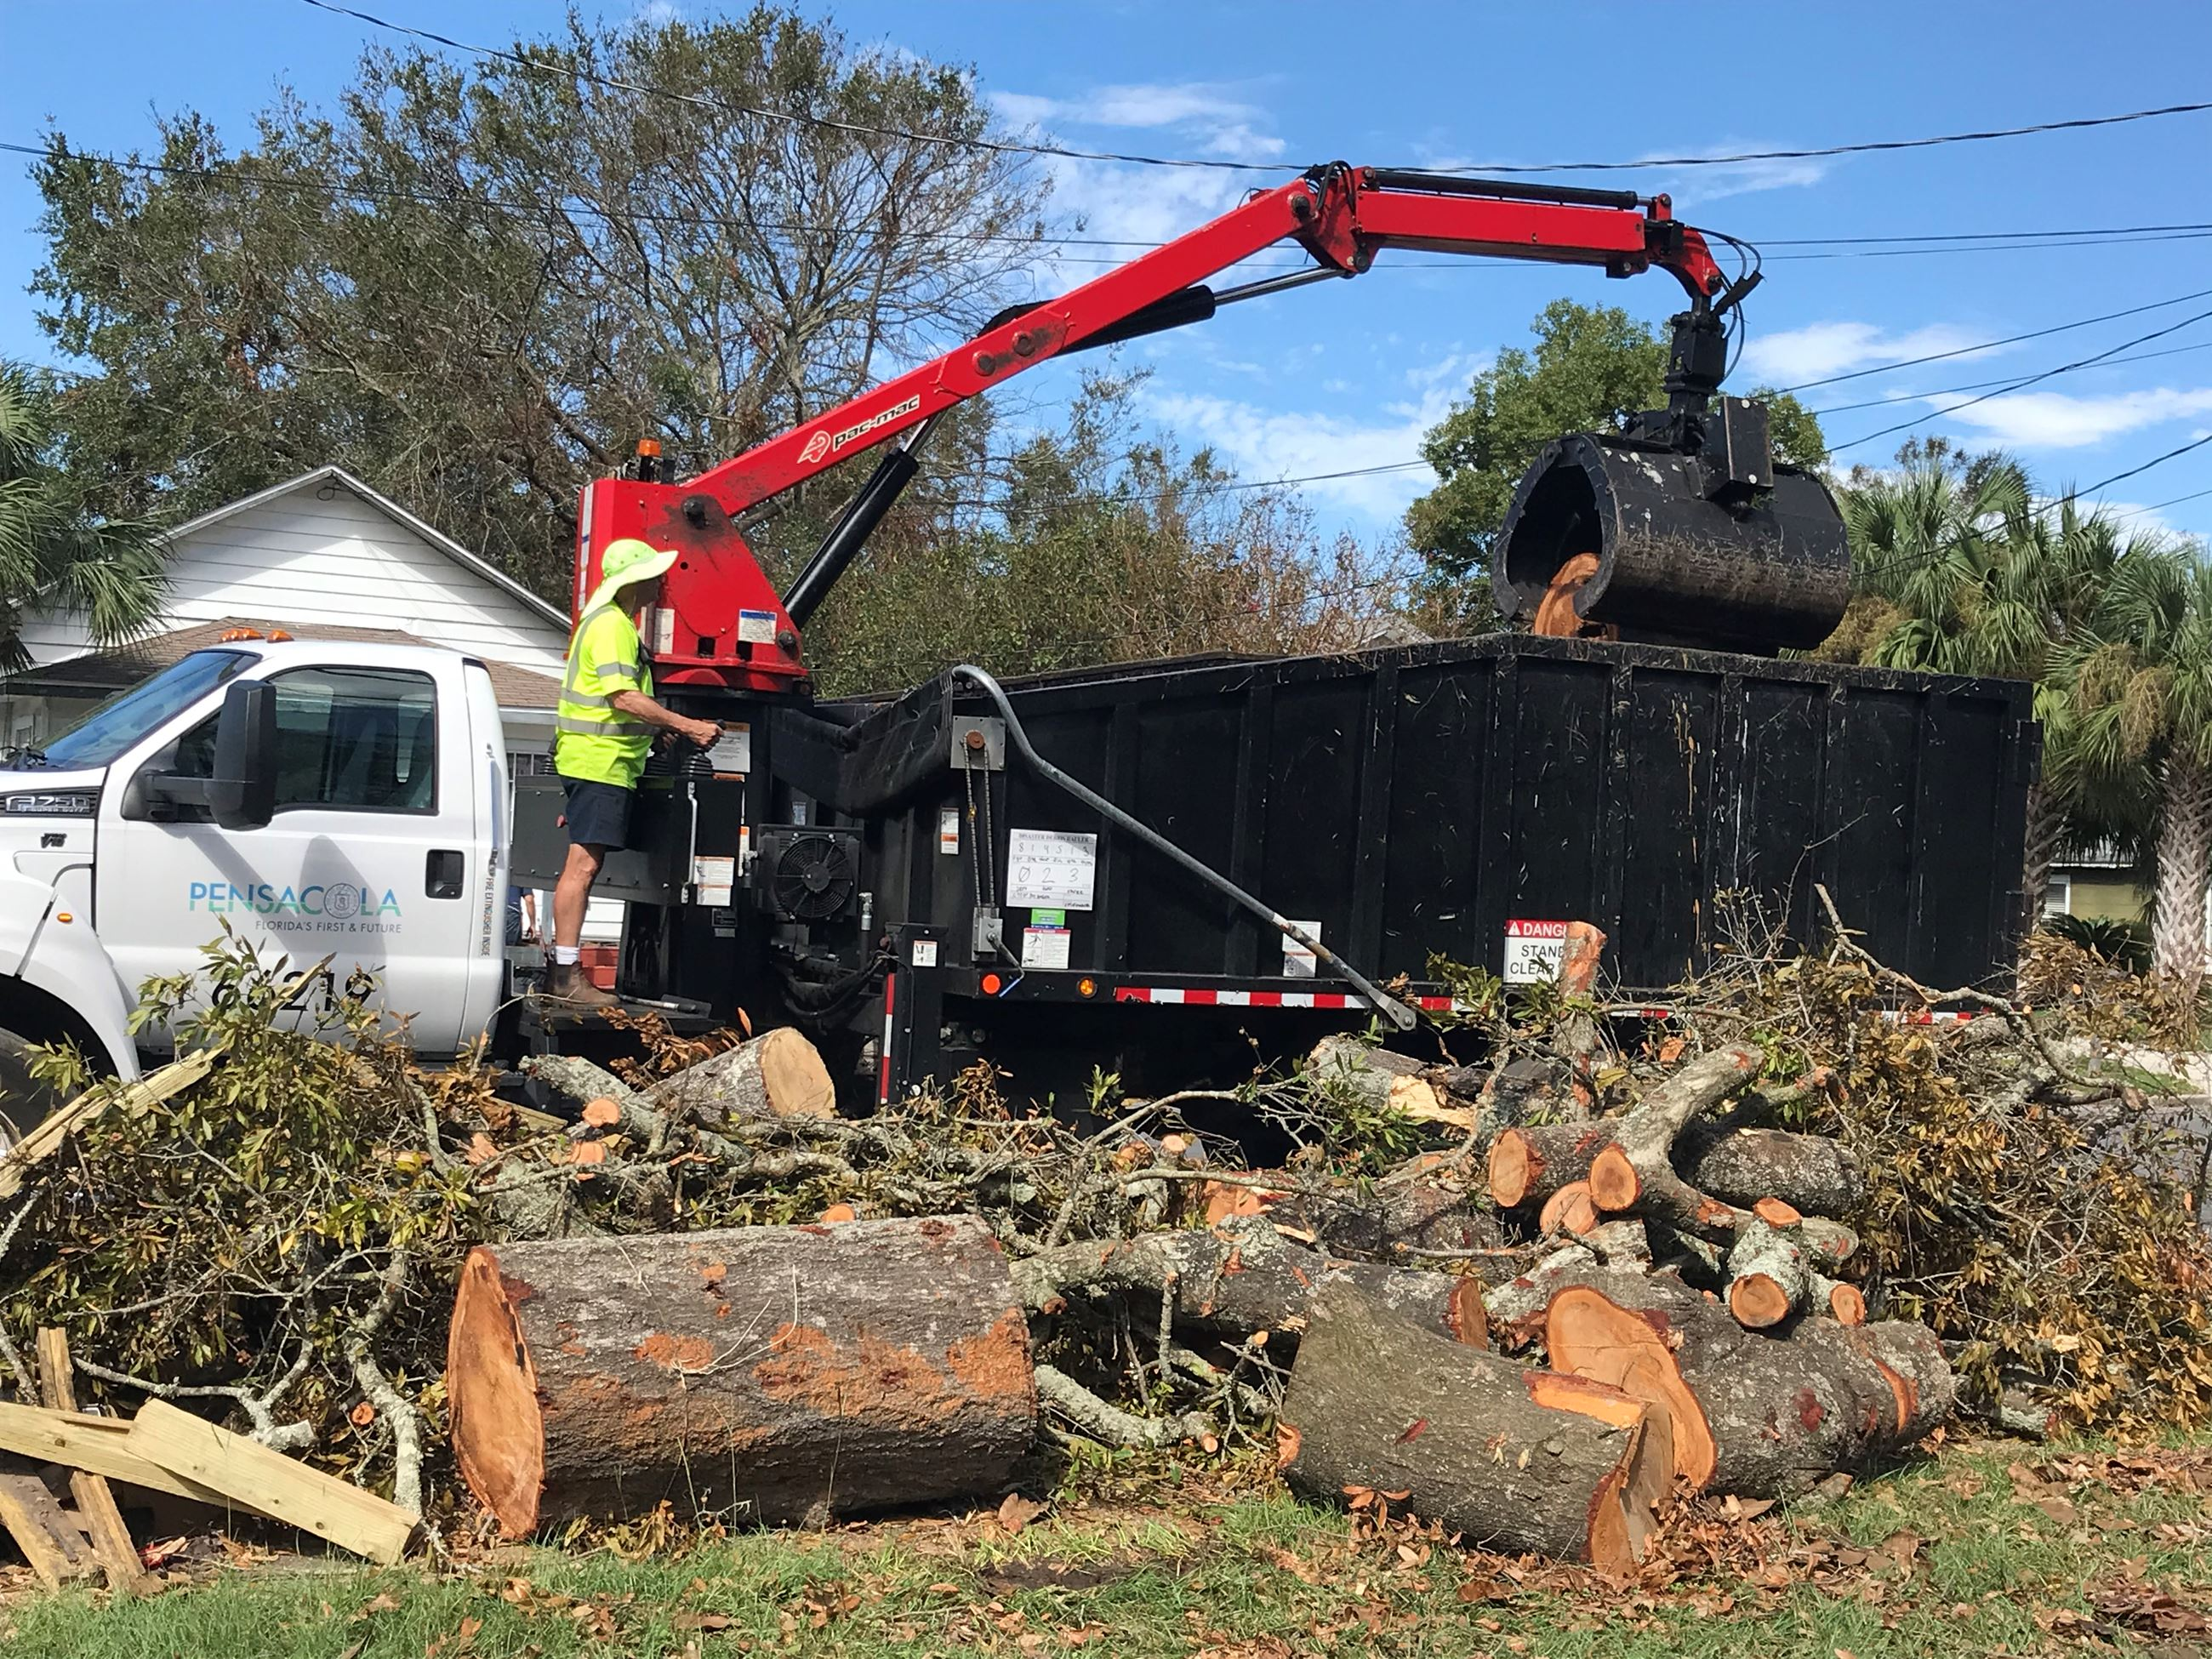 A city sanitation worker collects yard debris